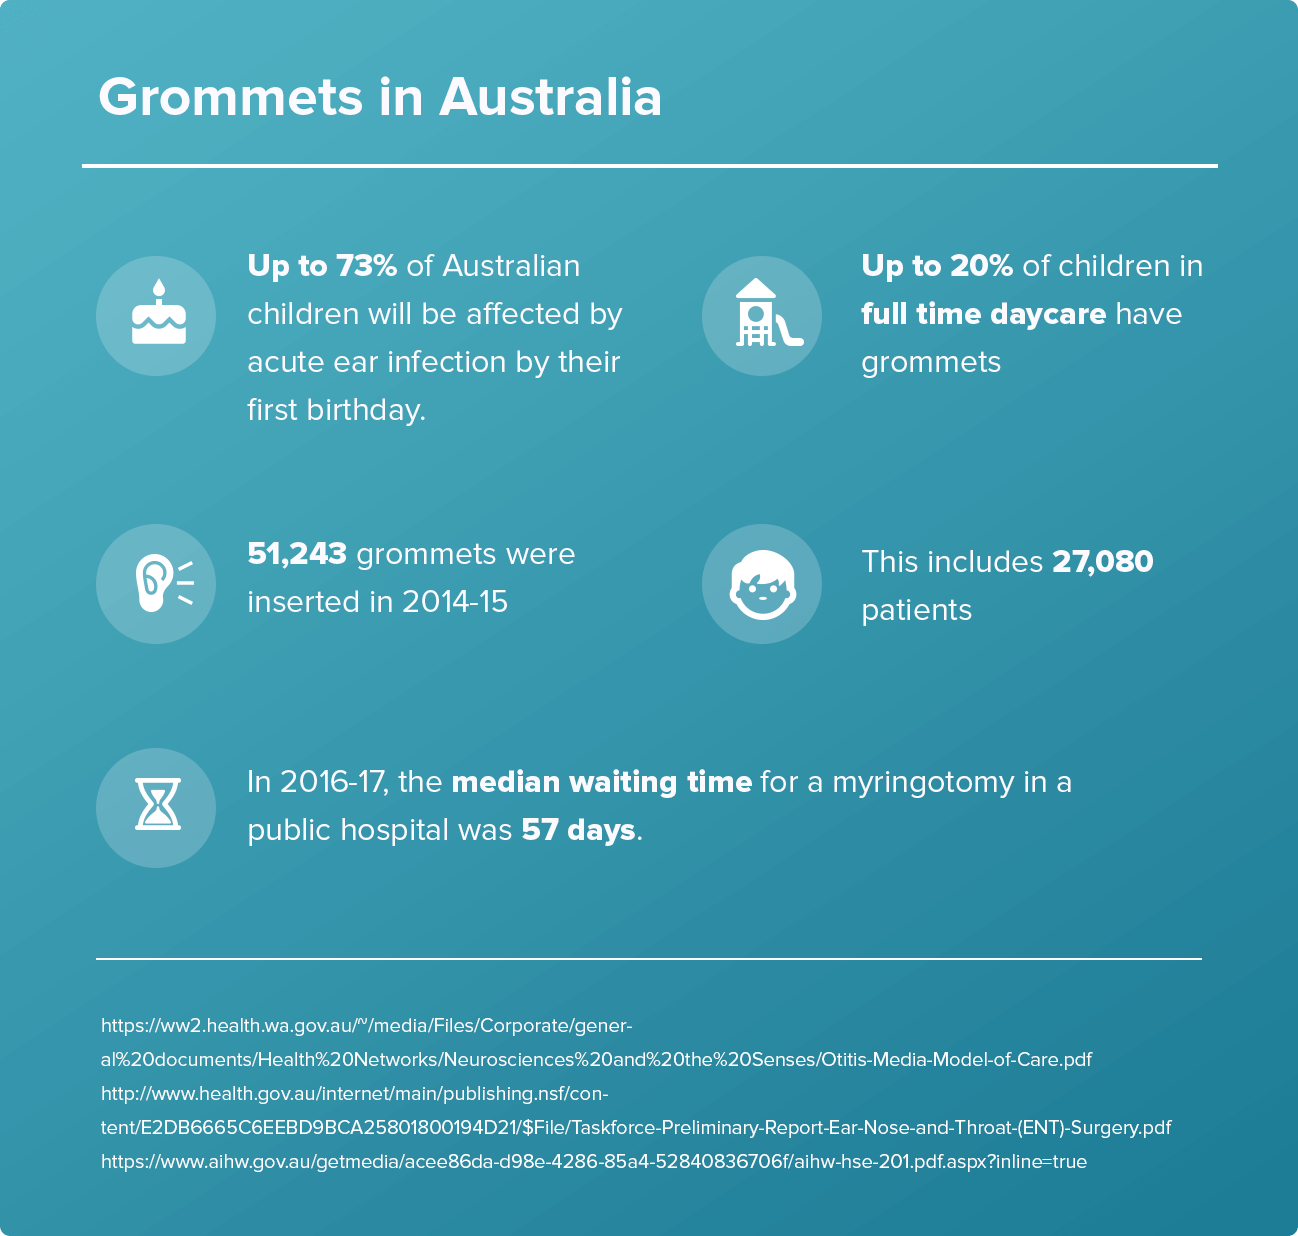 Facts About Grommets in Australia